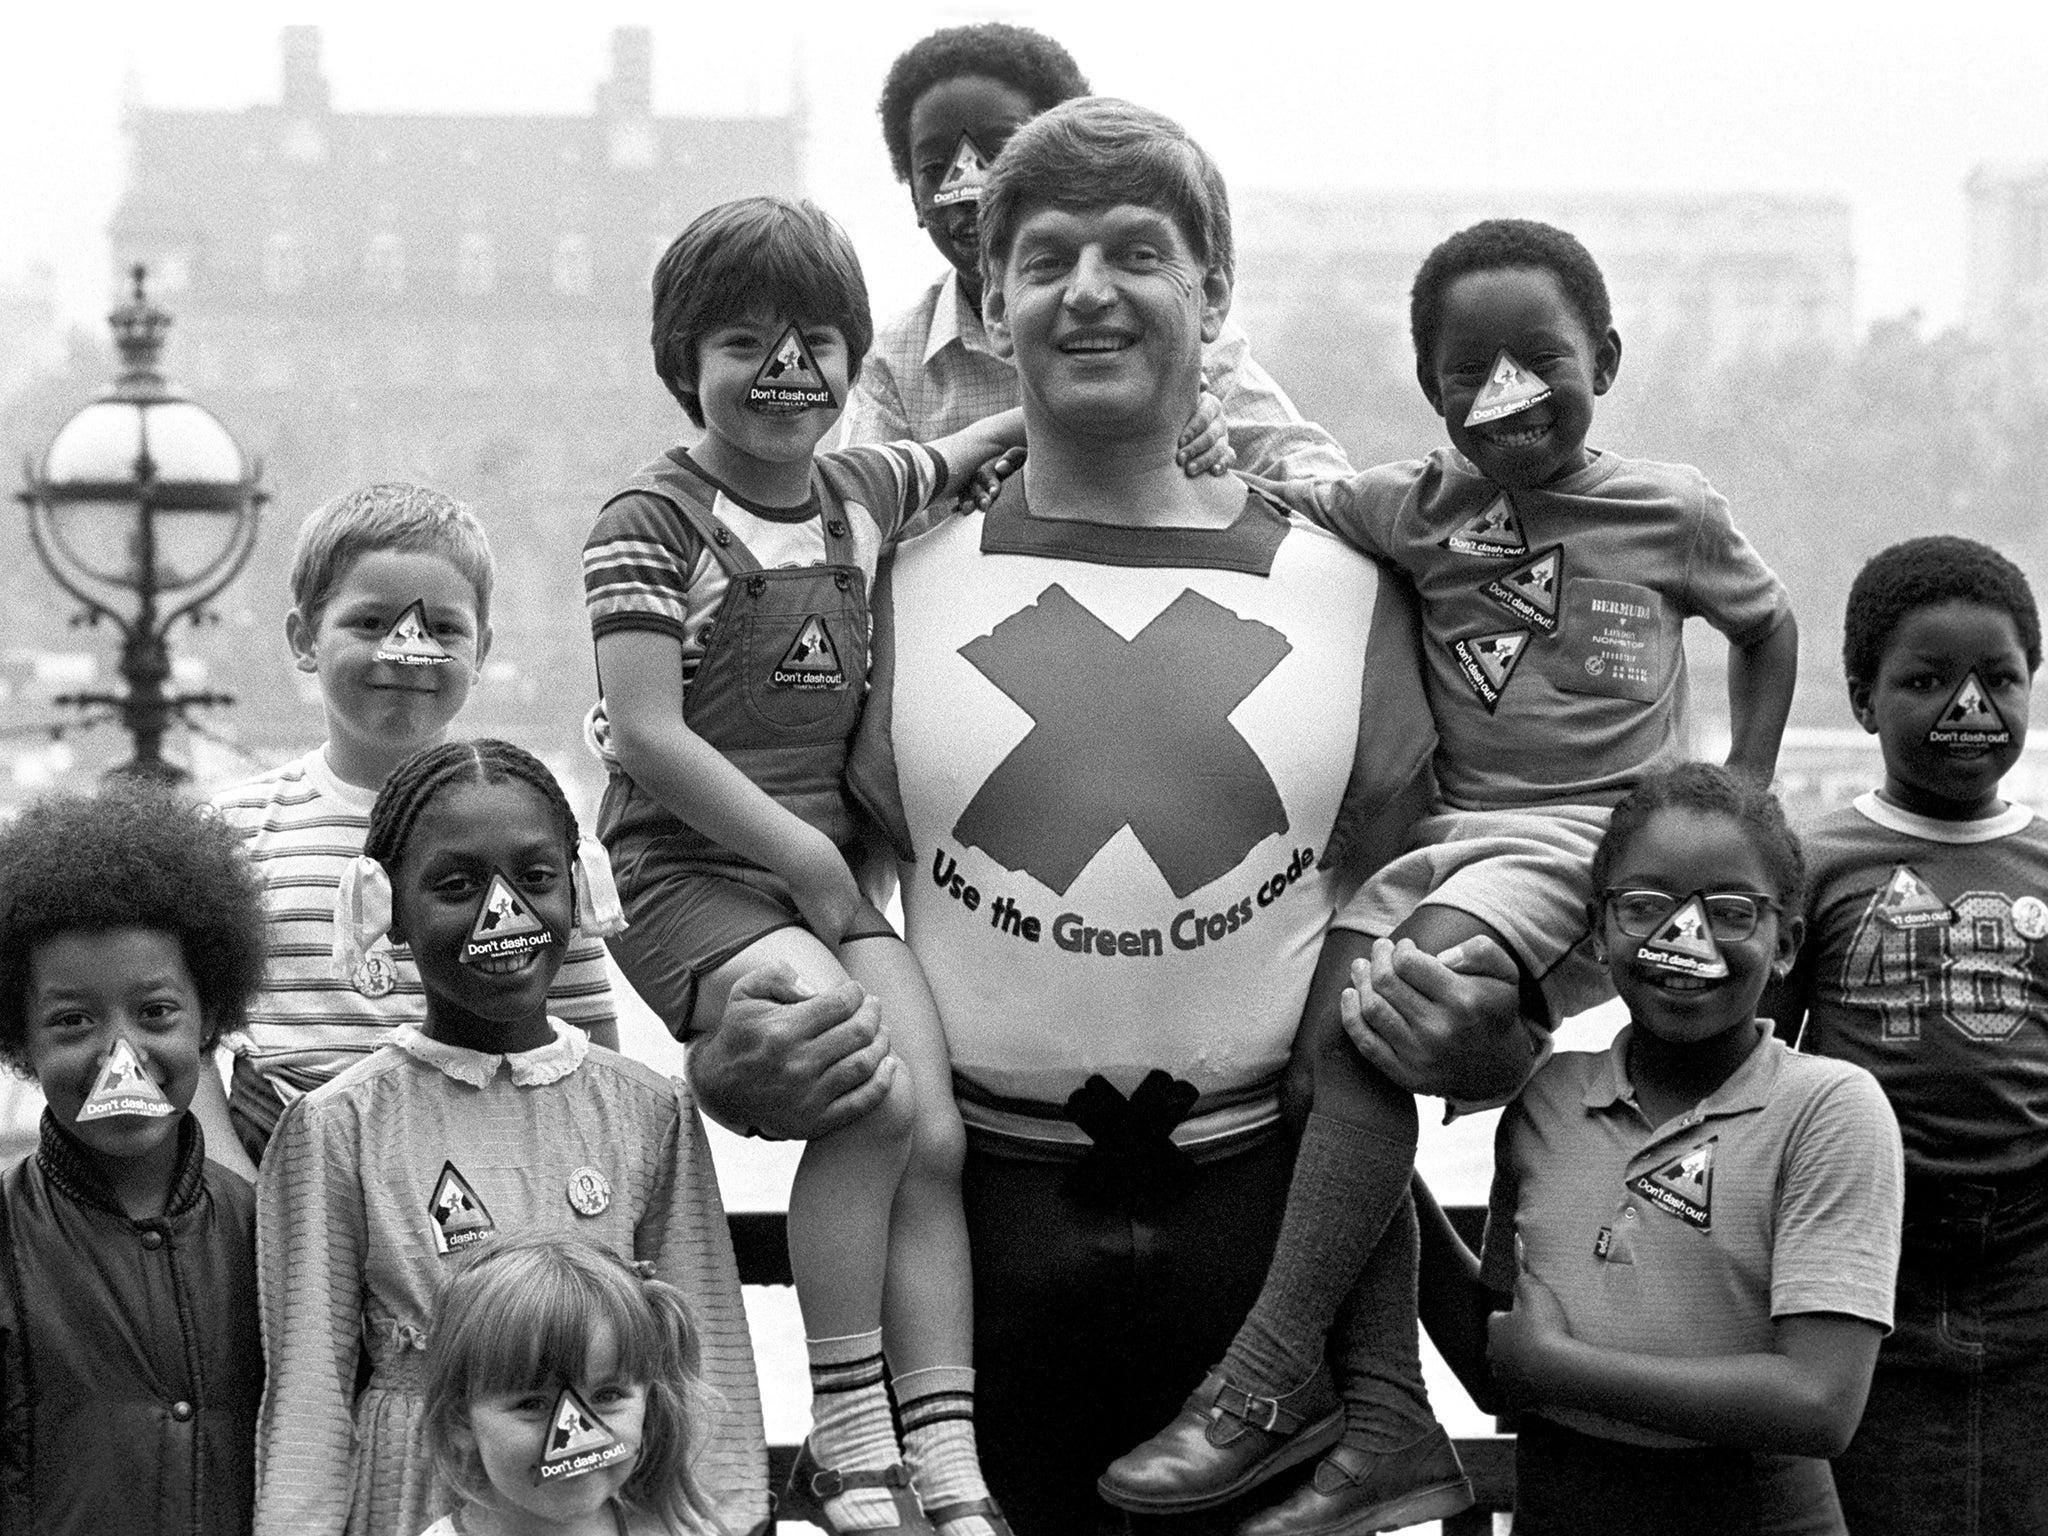 Dave Prowse: Road safety hero who crossed over to the Dark Side | The  Independent